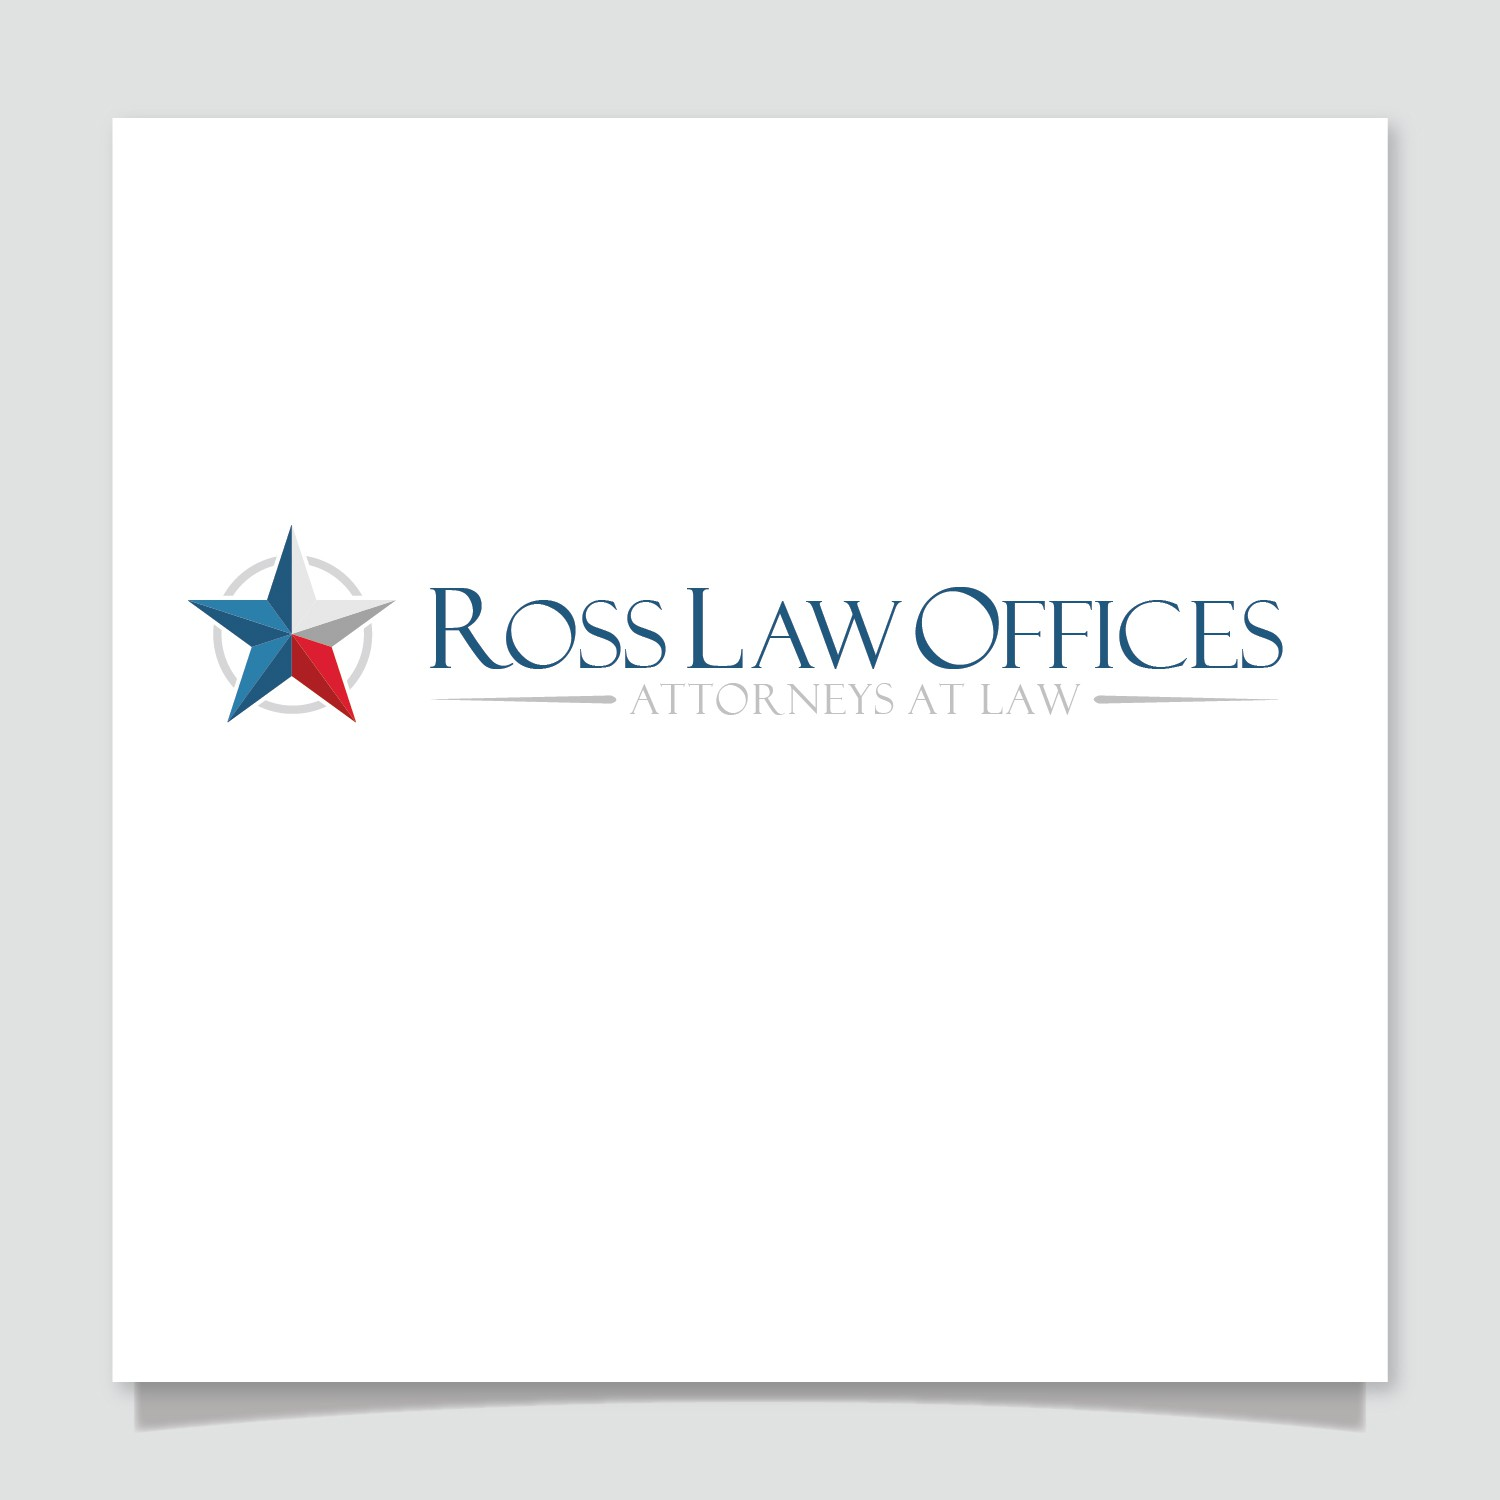 Ross Law Offices needs a new logo